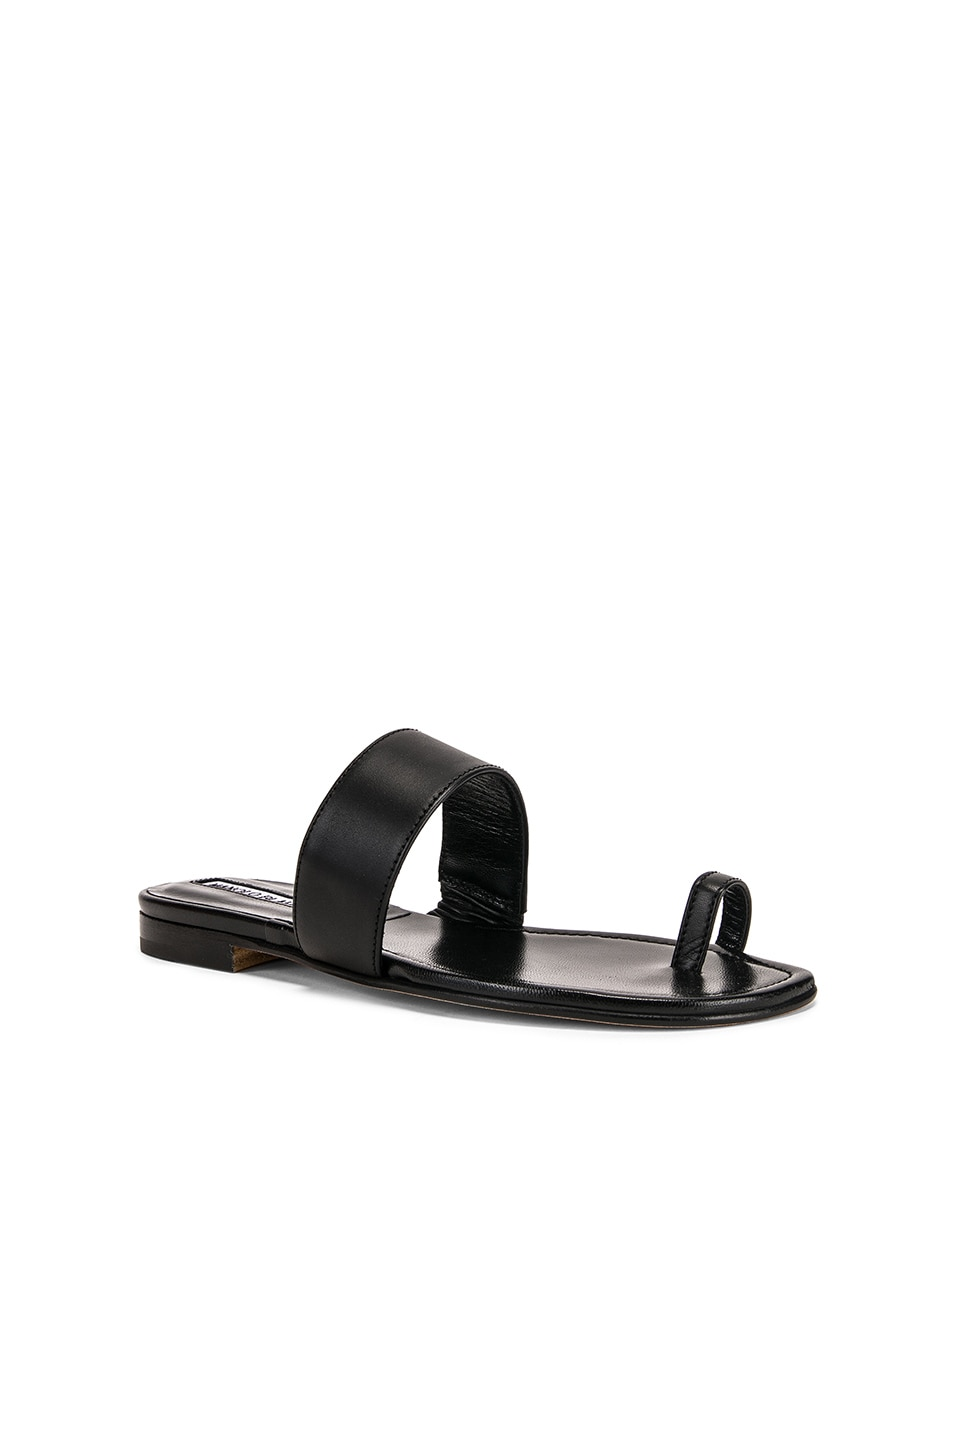 Image 2 of Manolo Blahnik Messen Sandal in Black Calf